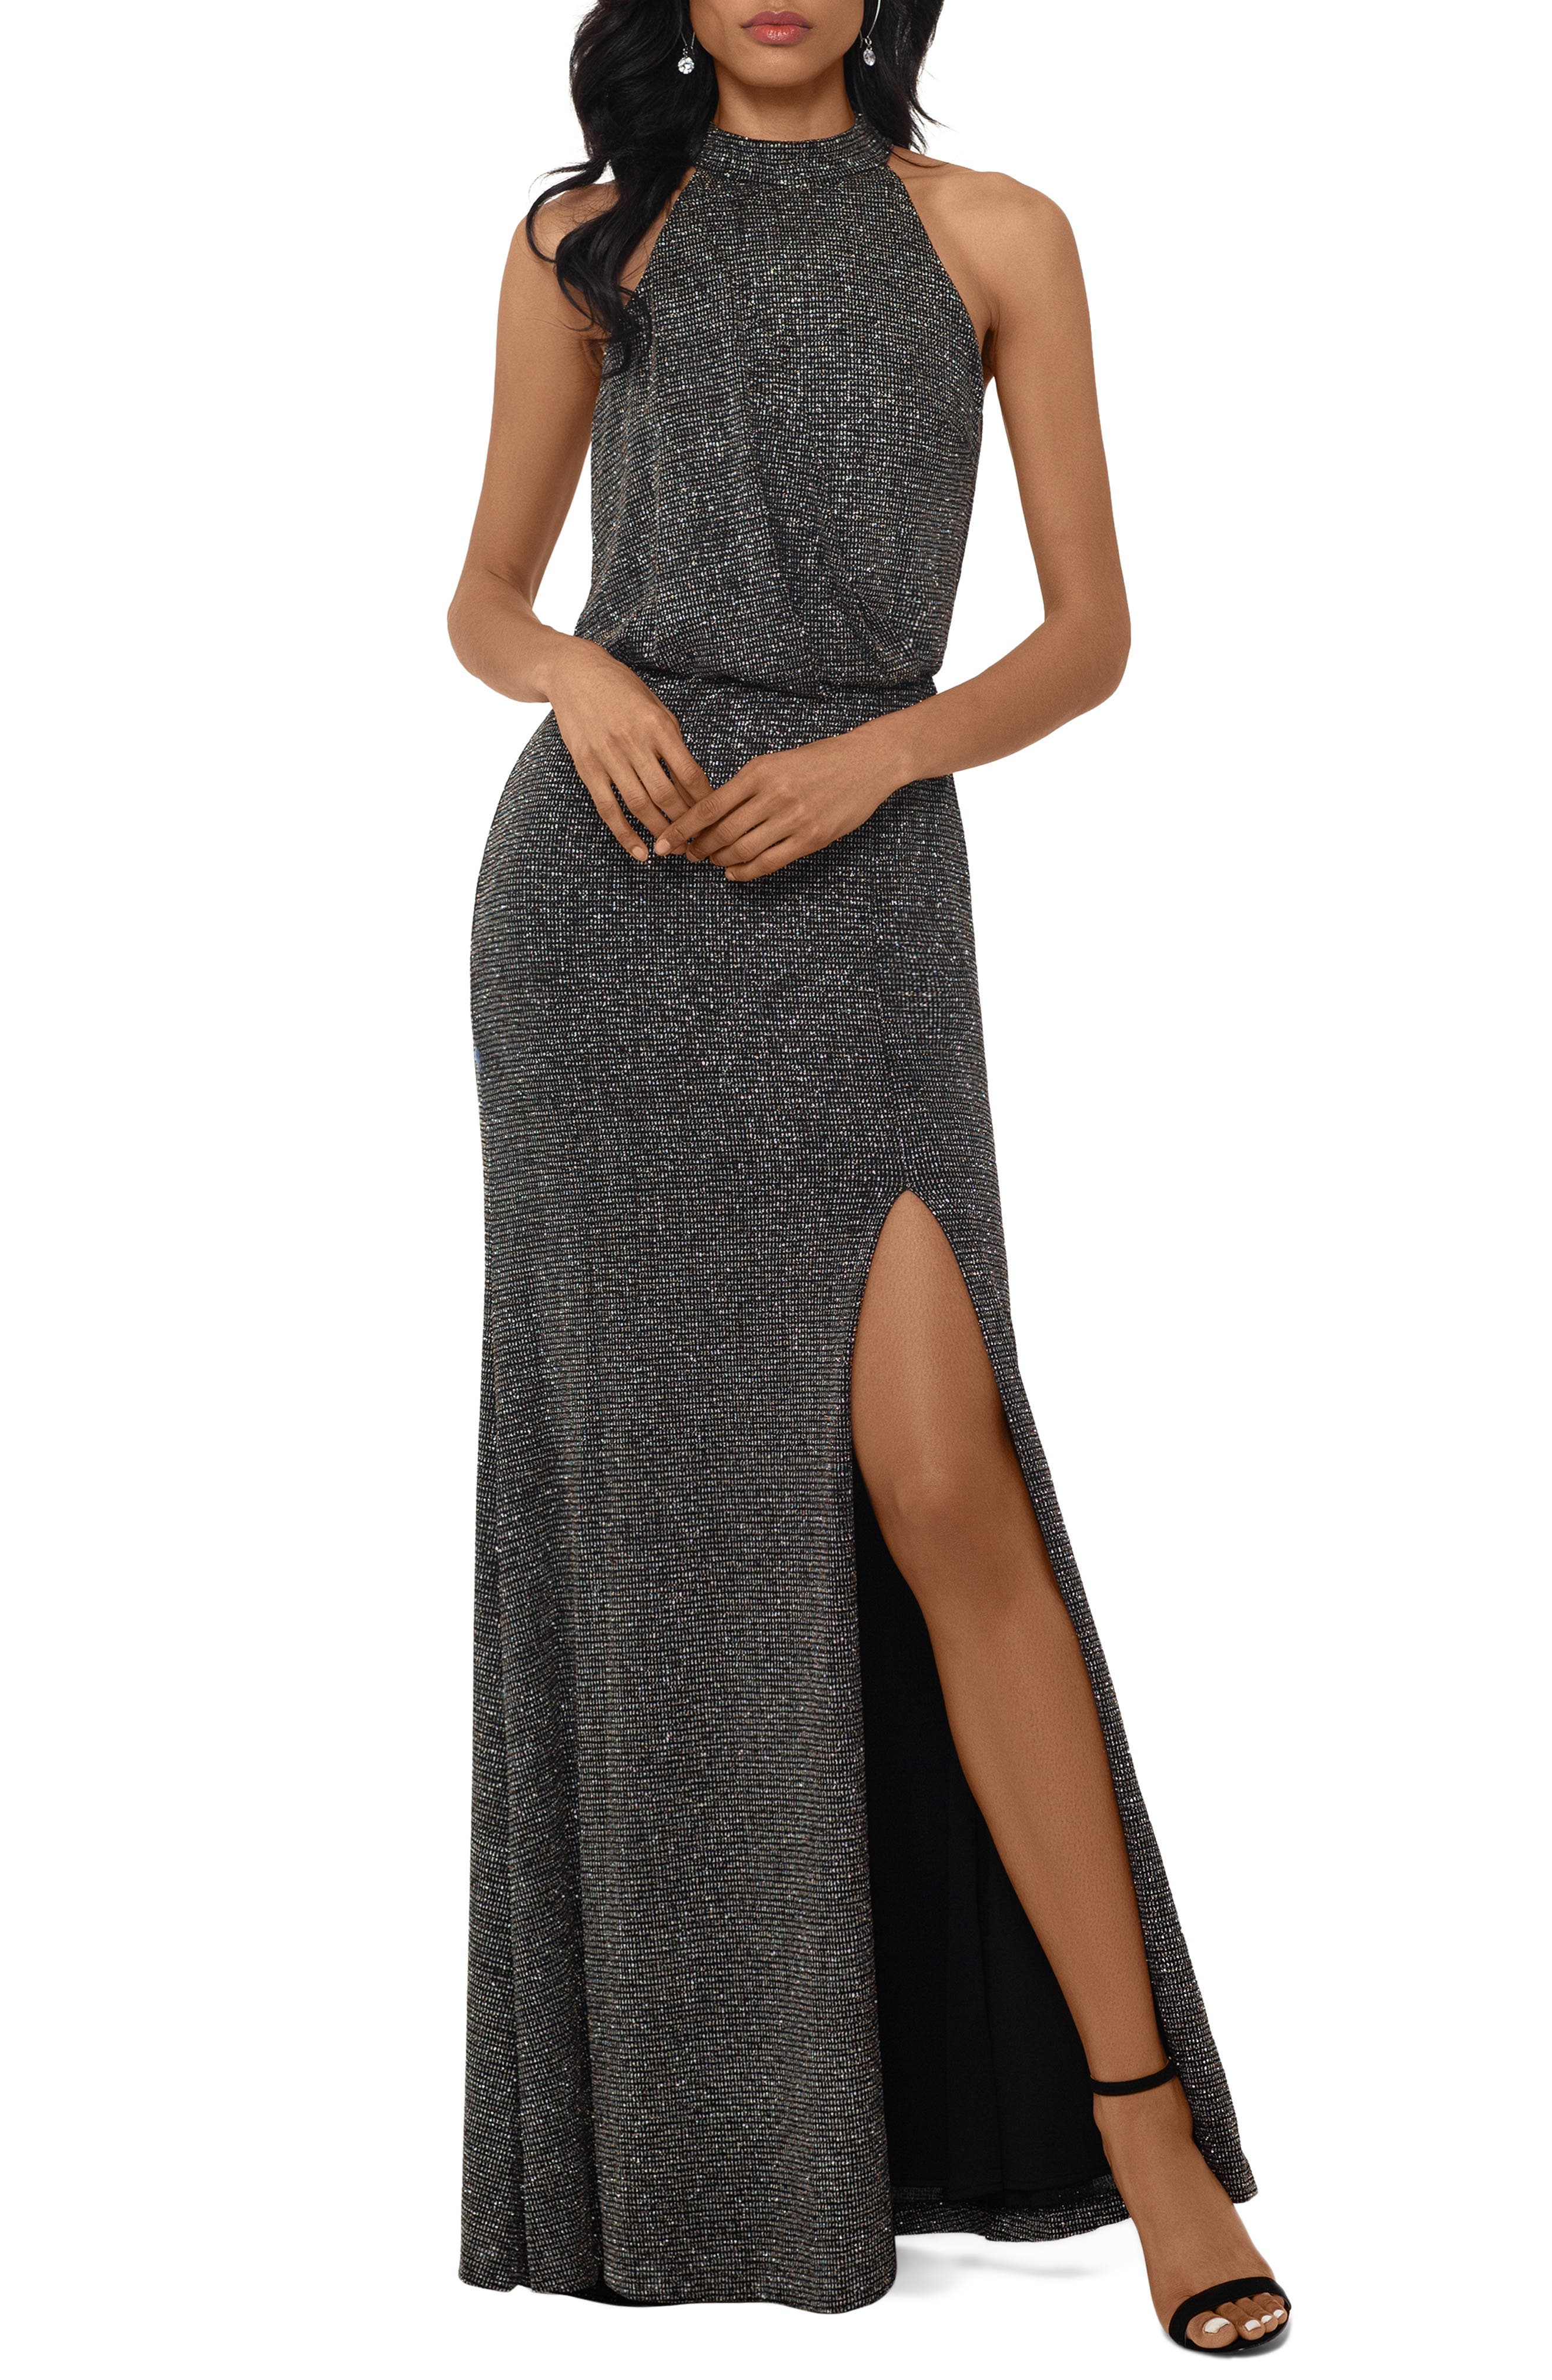 70s Prom, Formal, Evening, Party Dresses Womens Xscape Halter Neck Metallic Knit Evening Gown $238.00 AT vintagedancer.com